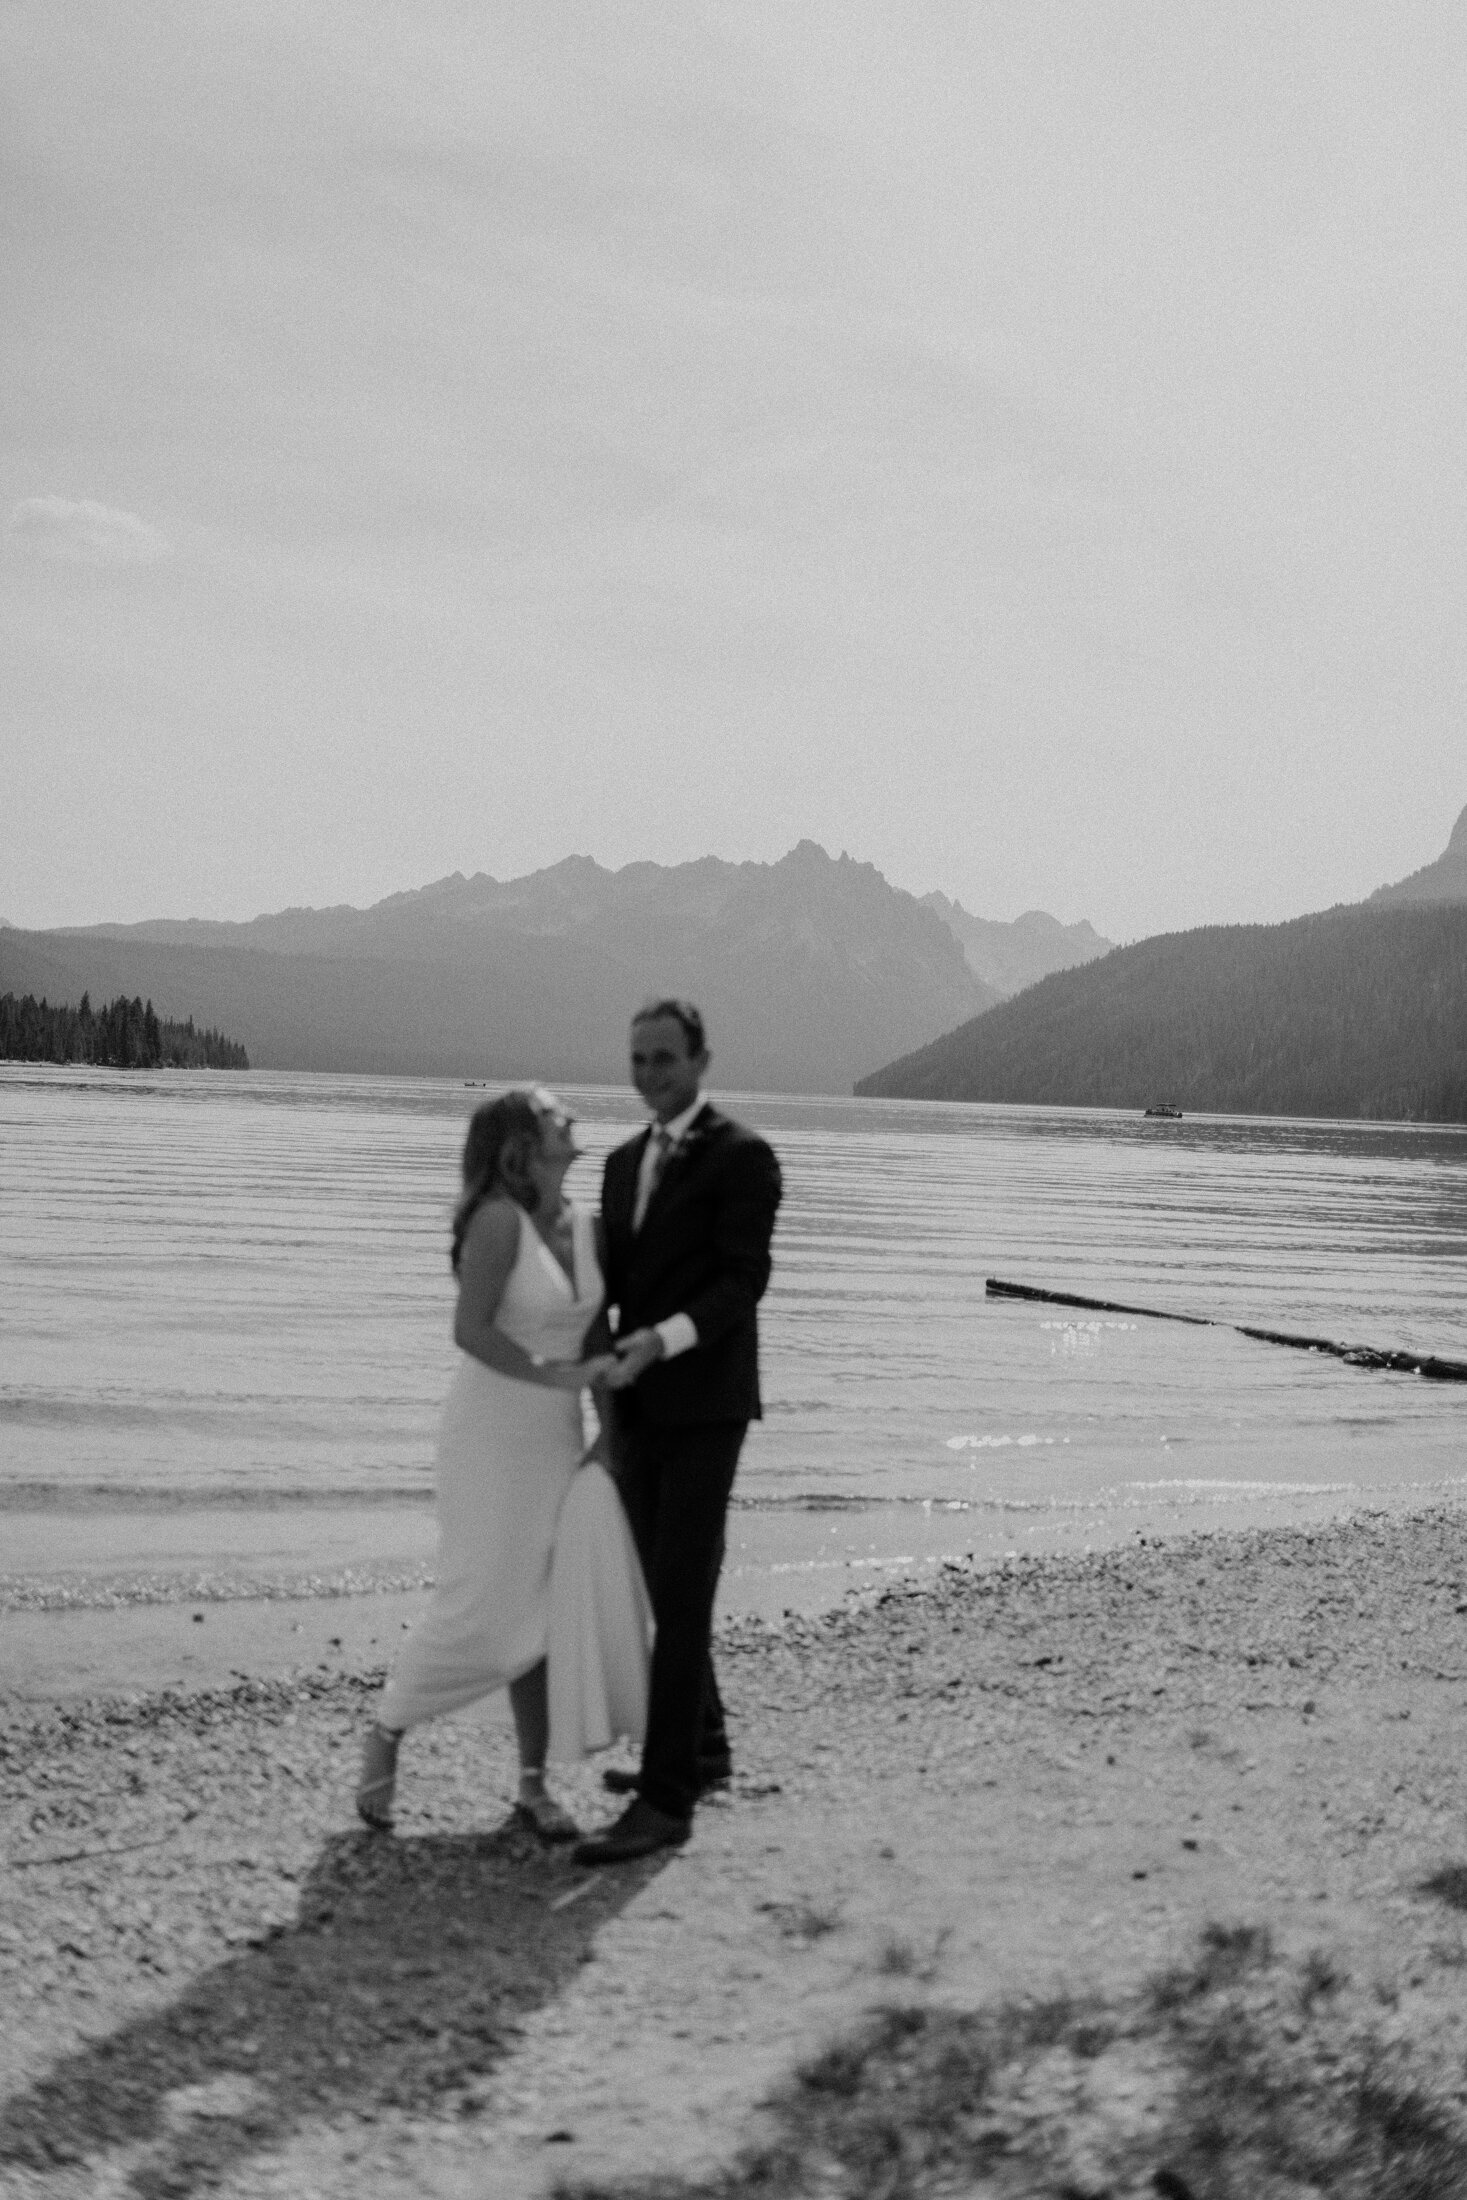 redfish-lake-wedding-stanley-idaho-b_A-85.jpg